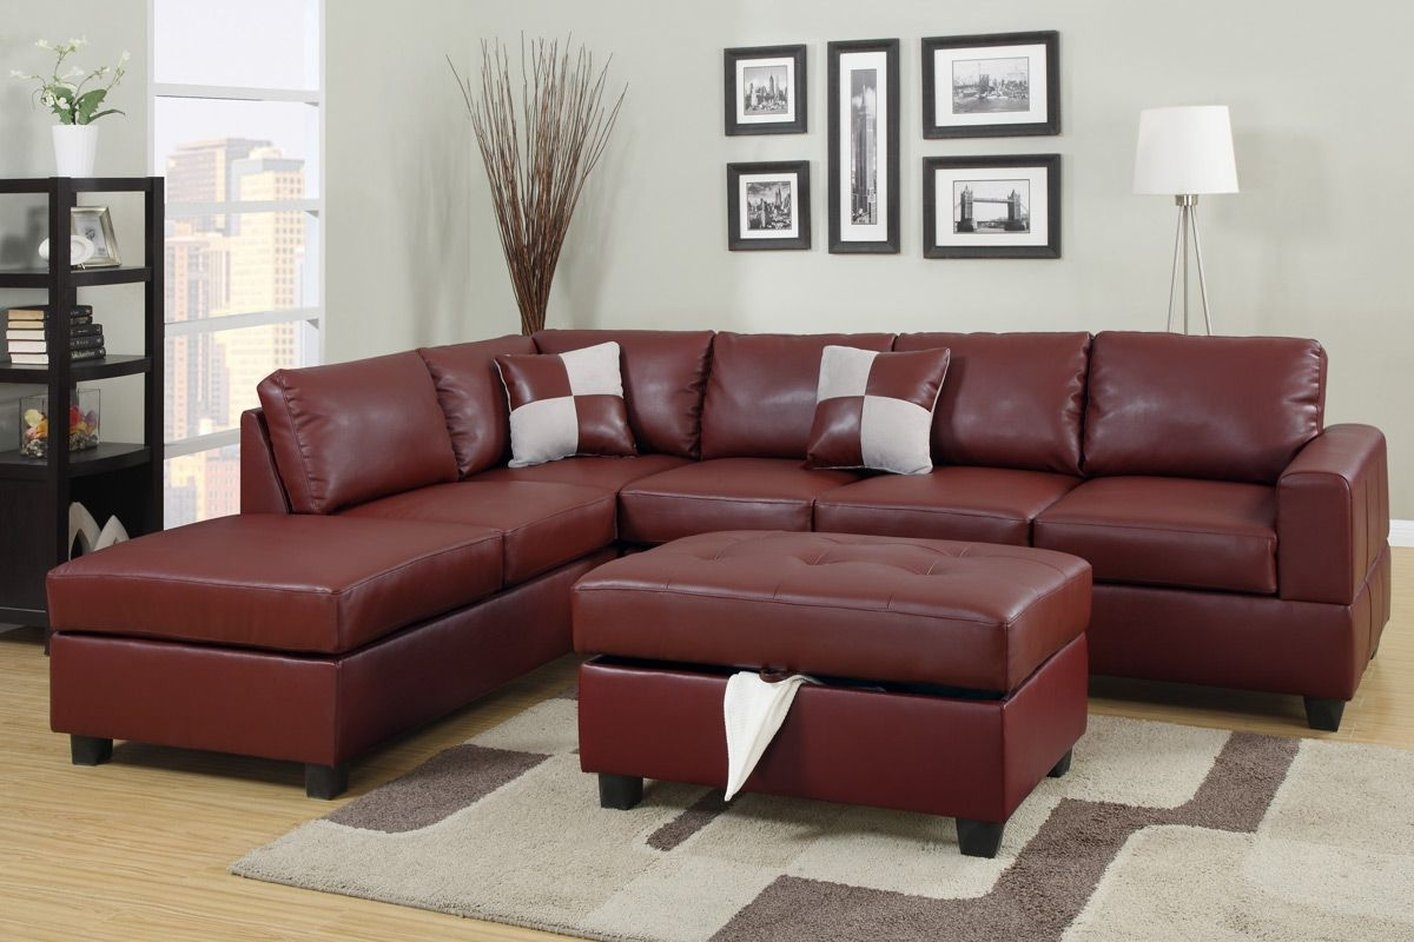 April Red Leather Sectional Sofa And Ottoman – Steal A Sofa Regarding Red Leather Sectional Couches (View 7 of 10)